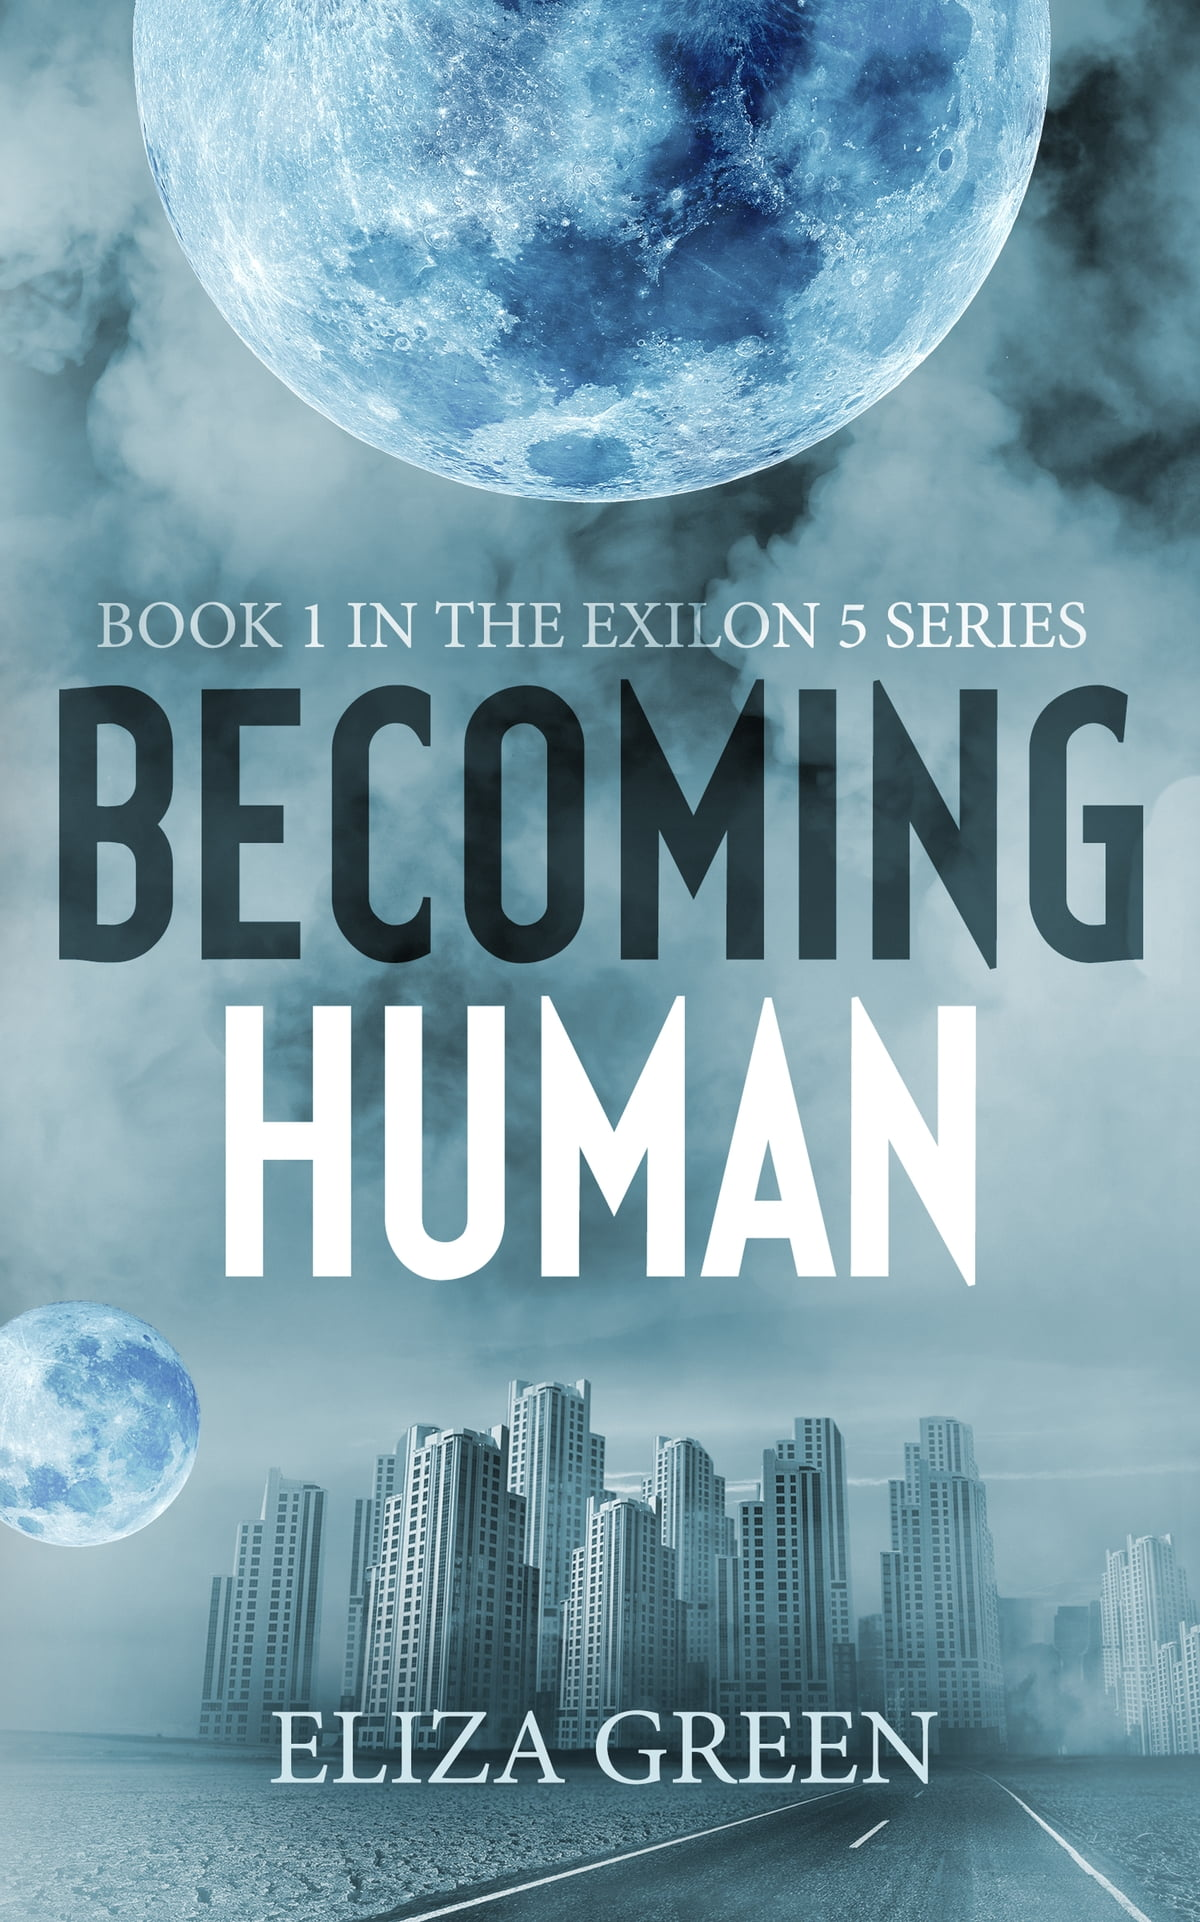 Becoming Human  Book 1, Exilon 5 Series Ebook By Eliza Green